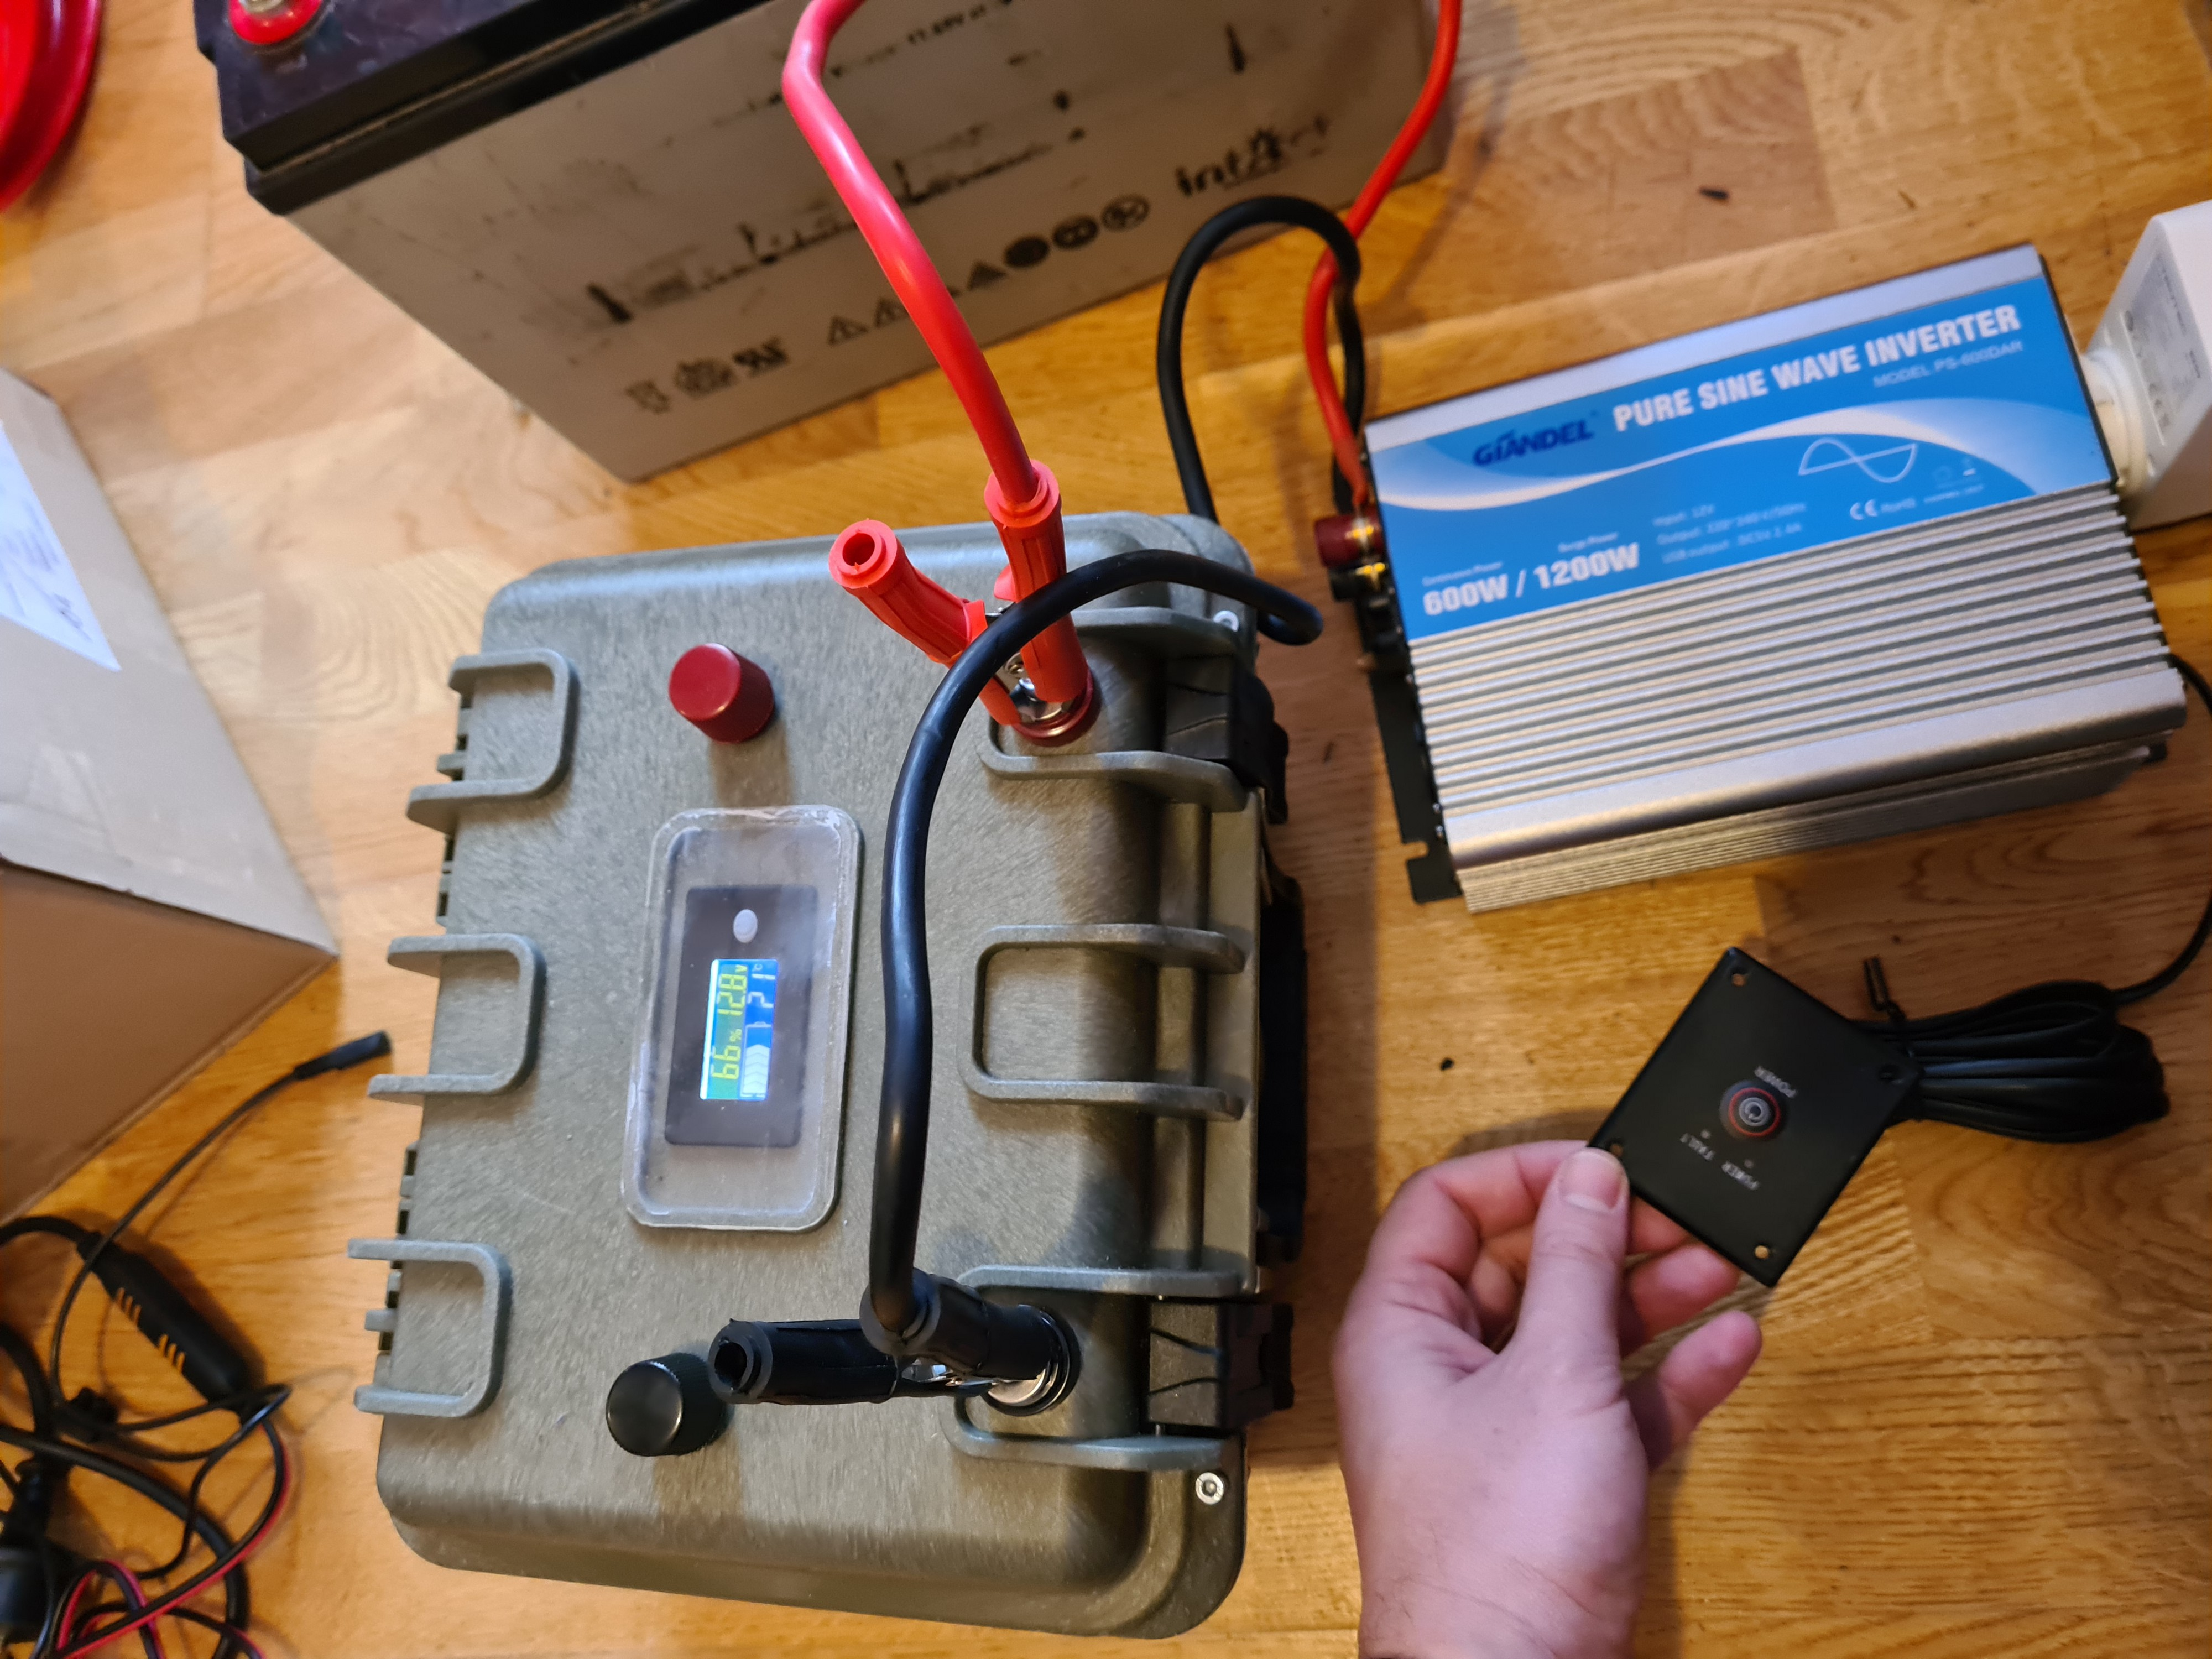 Turn off inverter to save battery